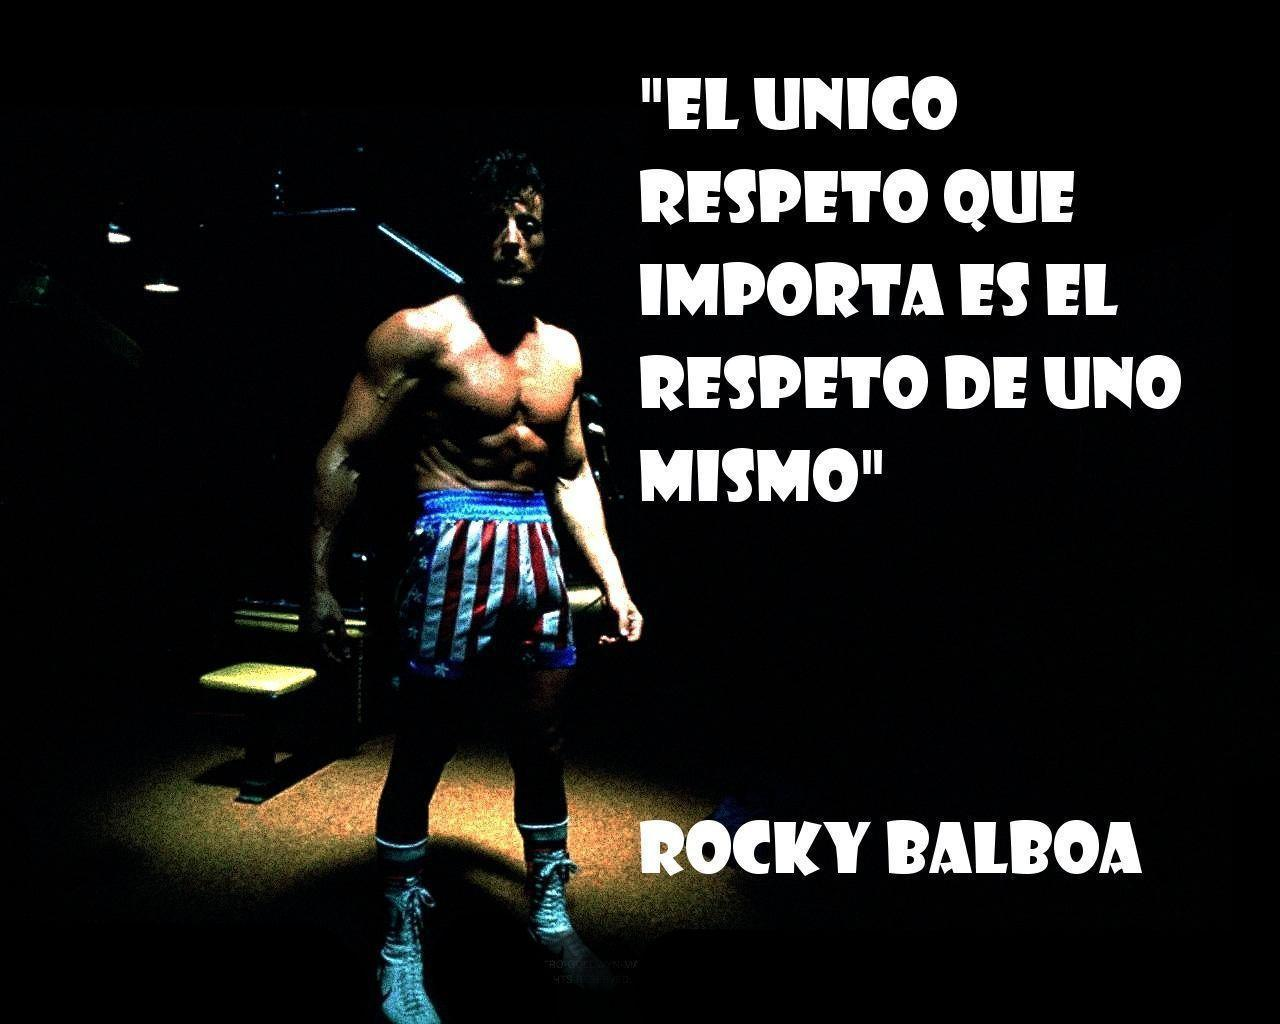 Rocky Balboa Quotes HD Wallpaper 13 - Hd Wallpapers